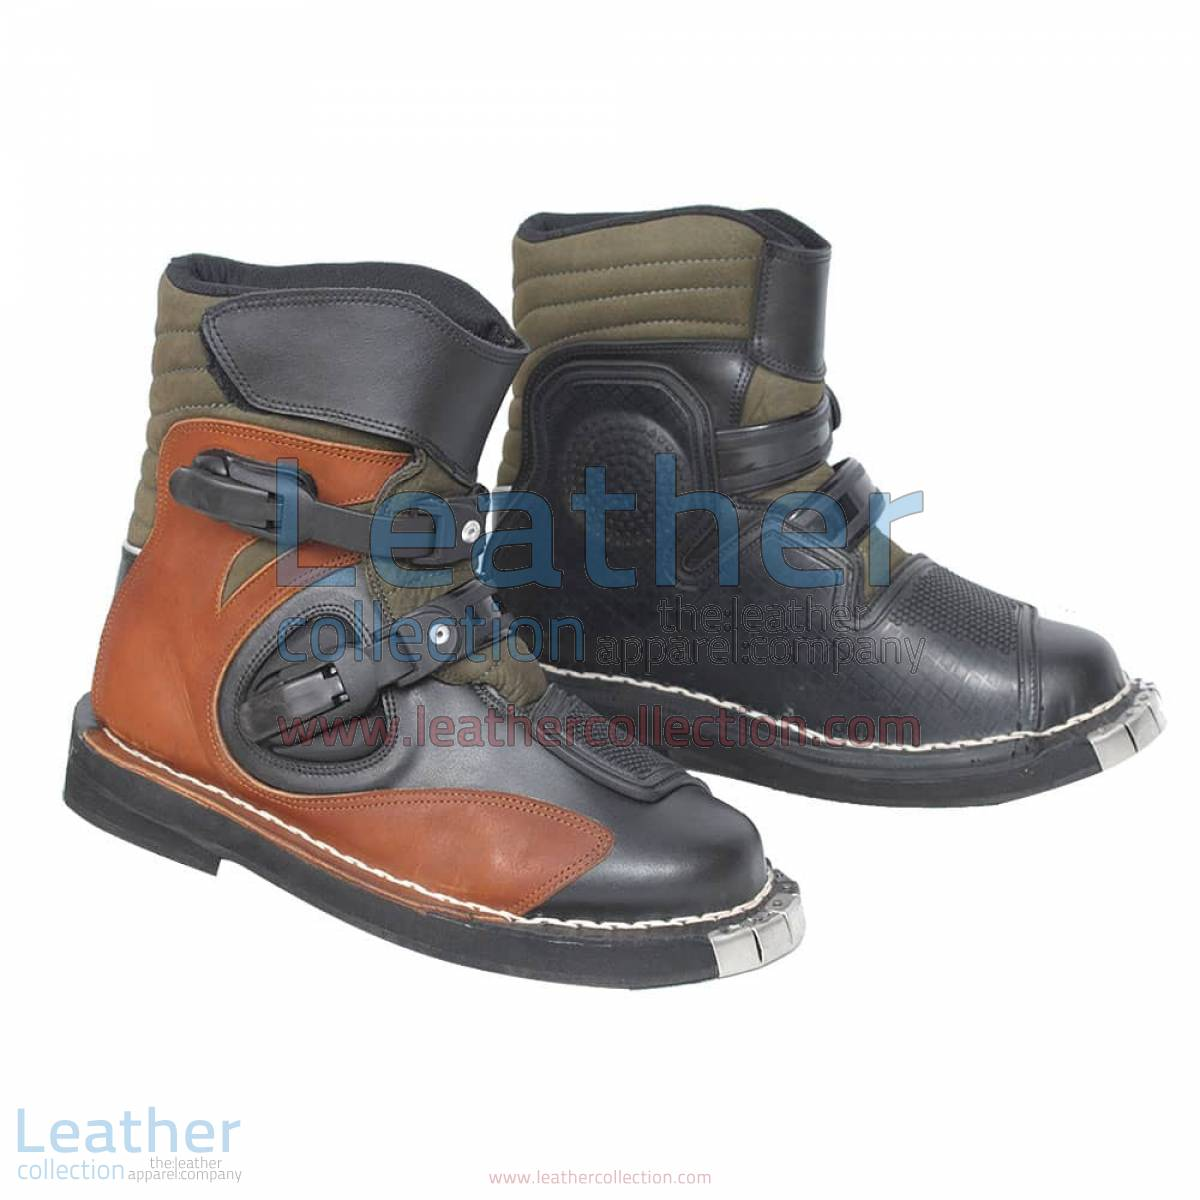 Bandit Motorcycle Riding Boots | riding boots,motorcycle riding boots